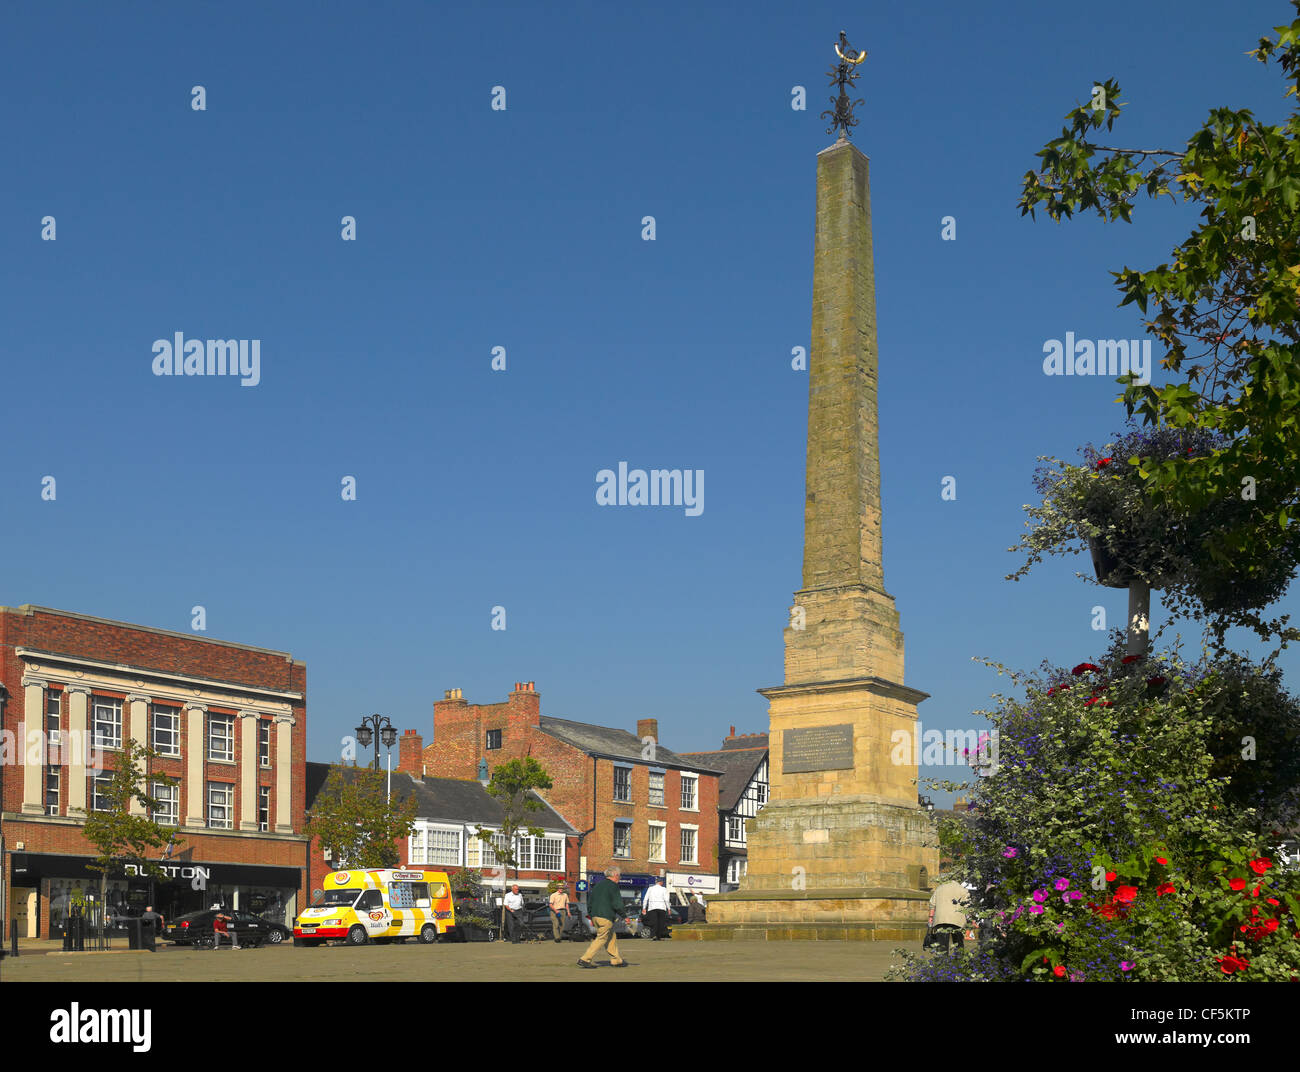 The Obelisk in the Market Place, built in 1703 to replace a Market Cross. Ripon is the 4th smallest city in England. - Stock Image